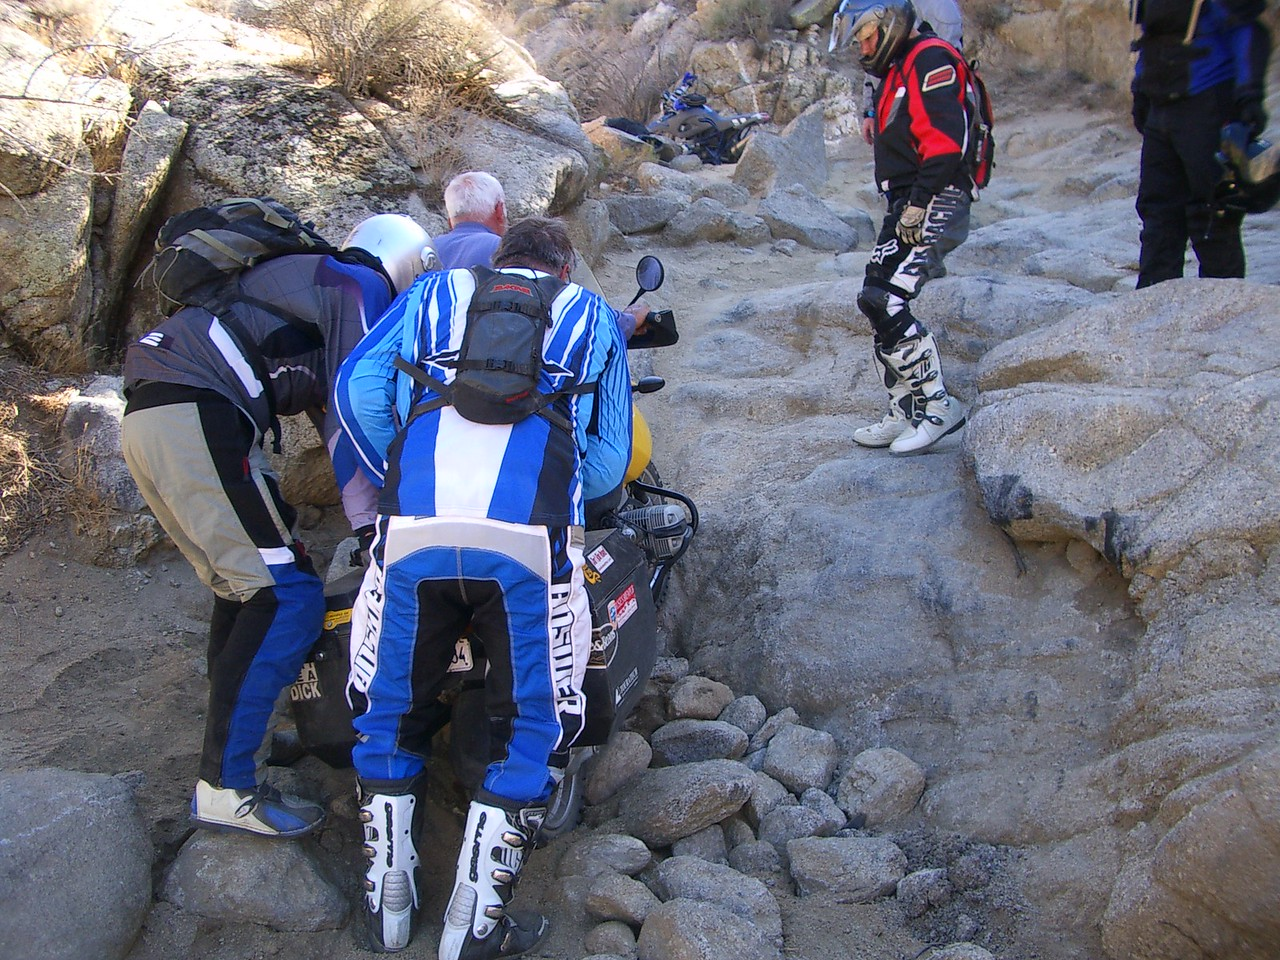 Even a riding instructor like Jim needed help here.